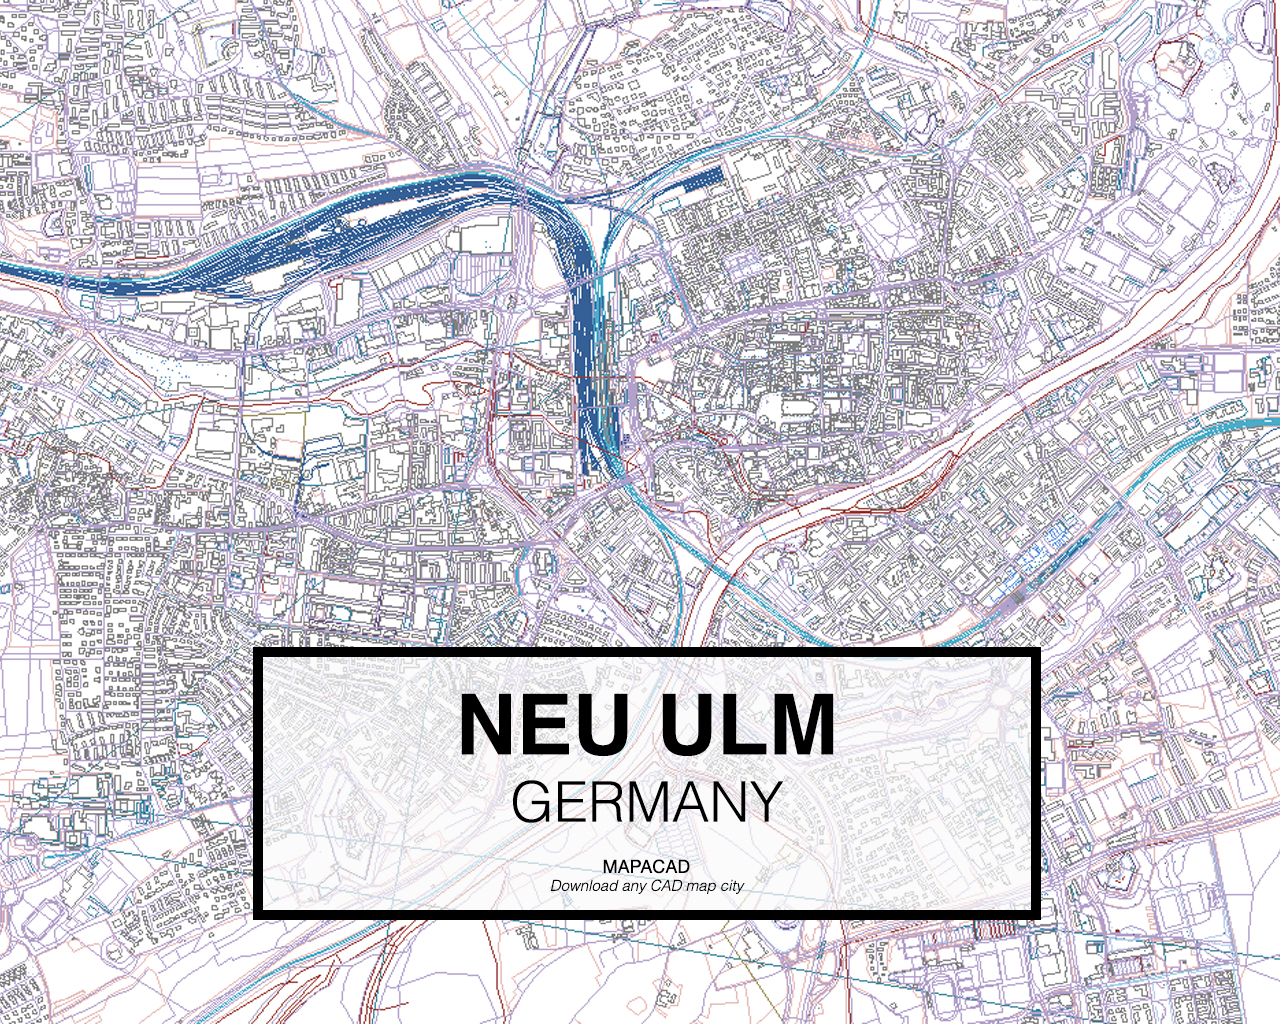 Map Of Germany Ulm.Neu Ulm